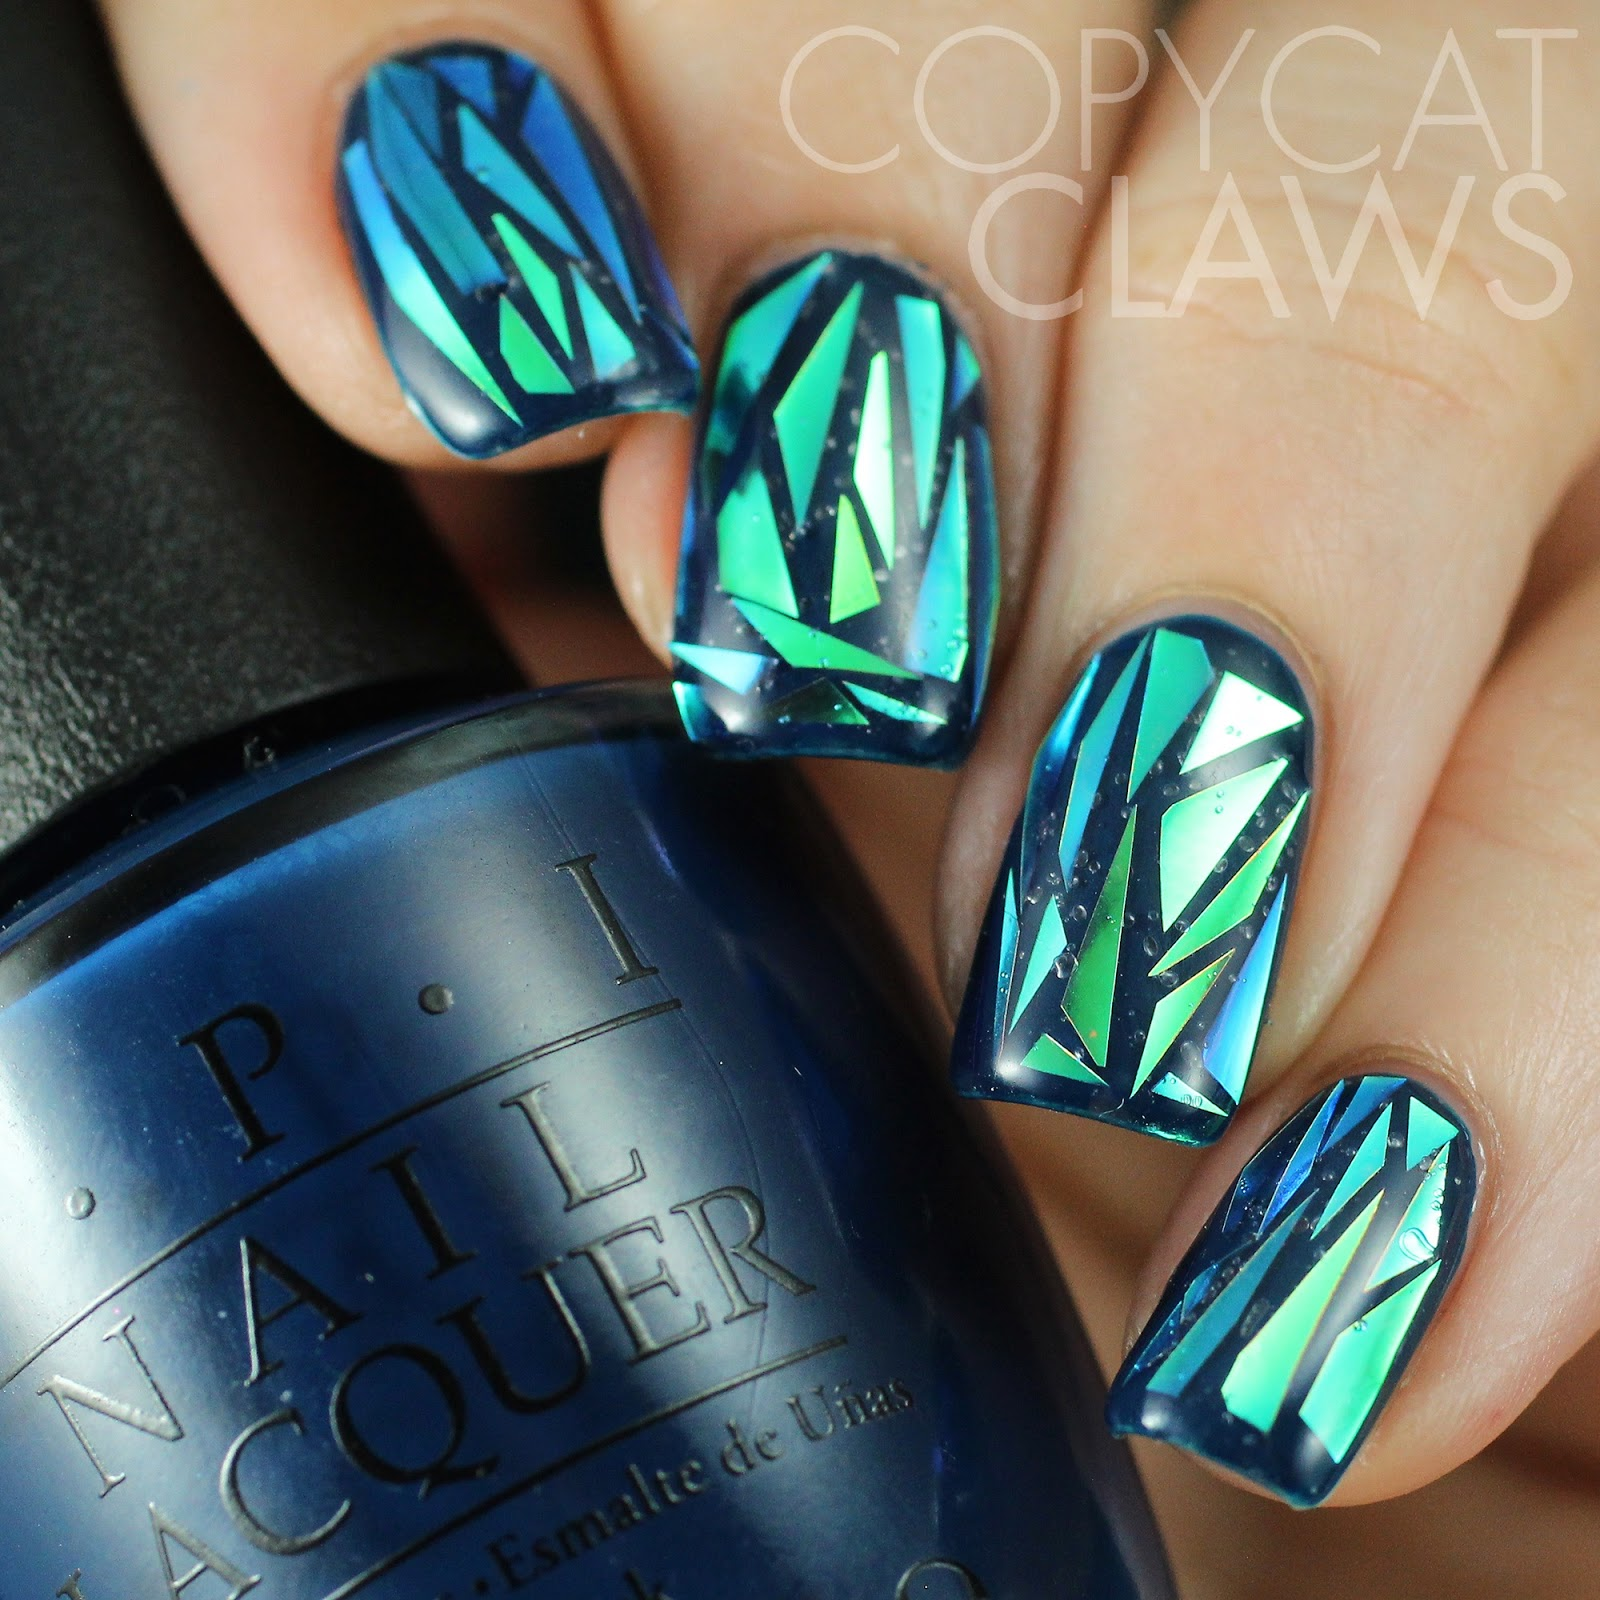 Copycat Claws Blue Color Block Nail Art: Copycat Claws: My Attempt At Shattered Glass Nails